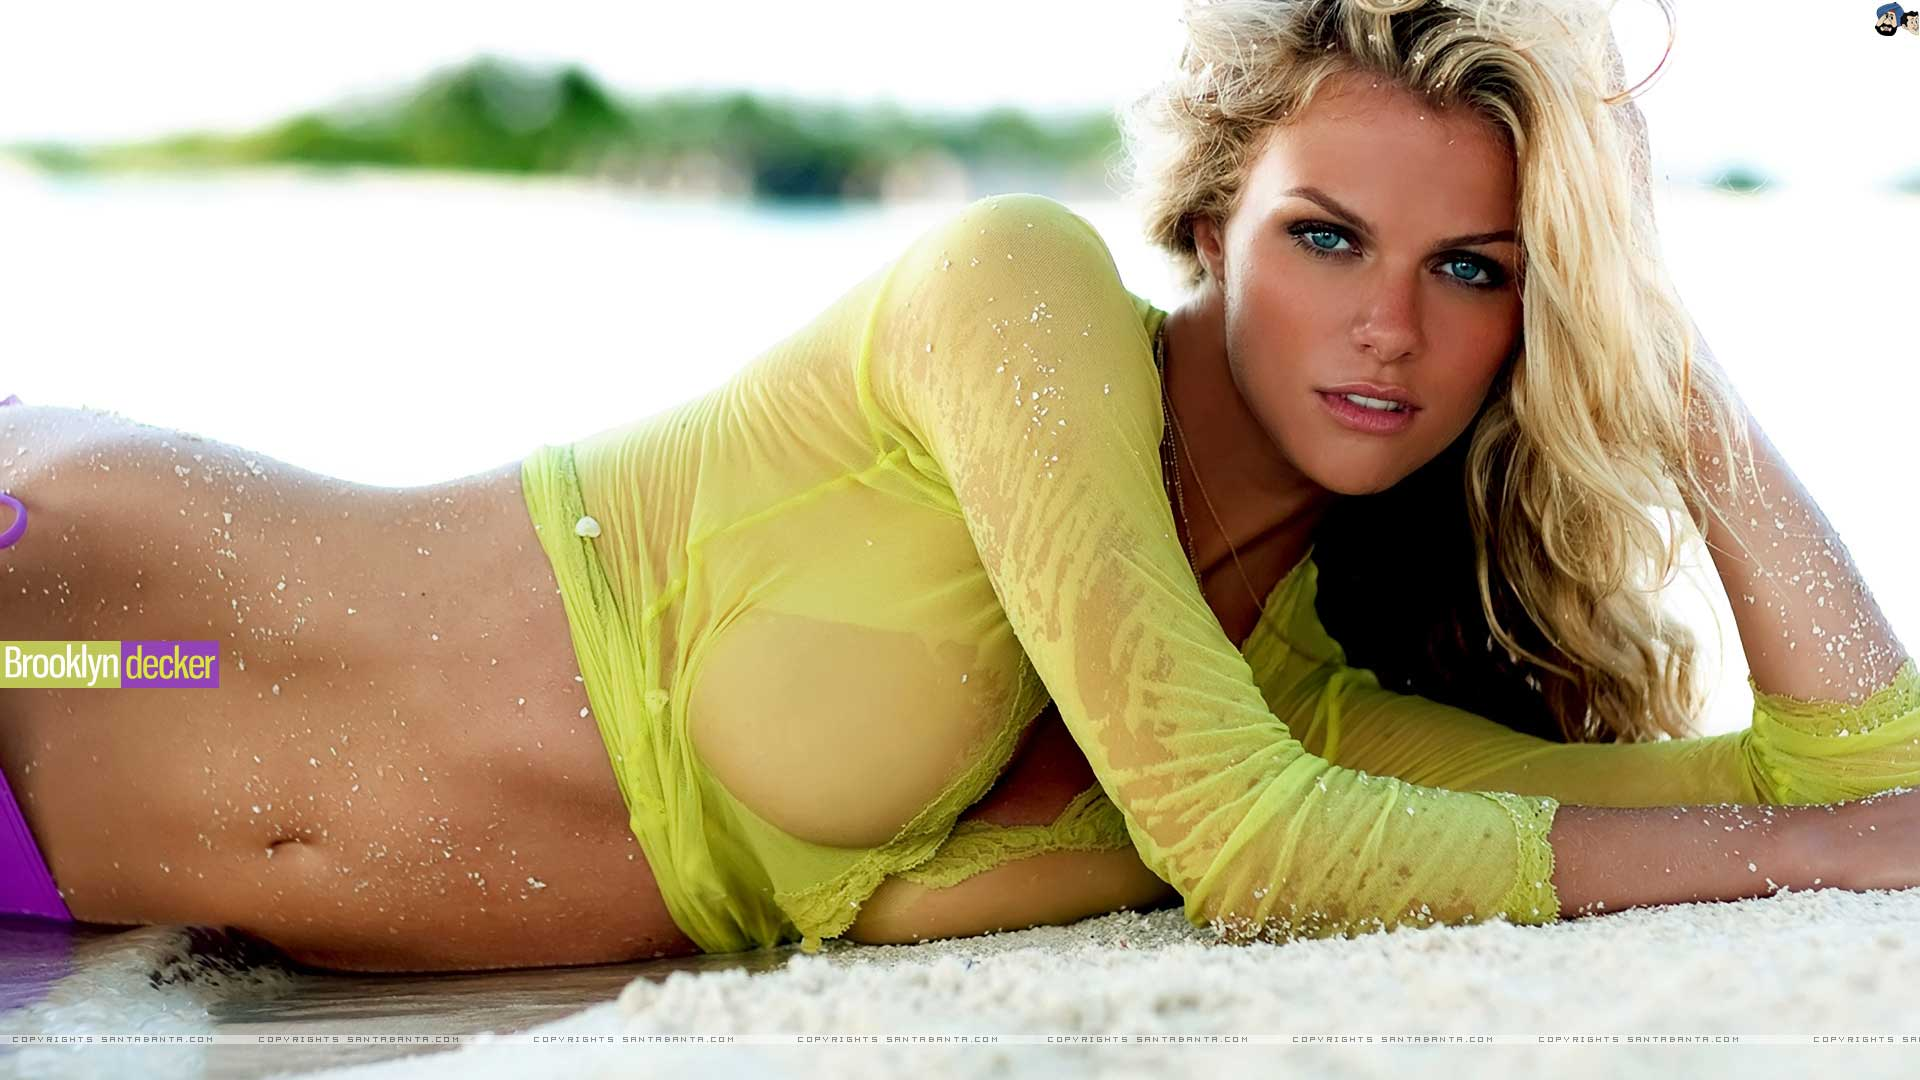 Women-Brooklyn-Decker